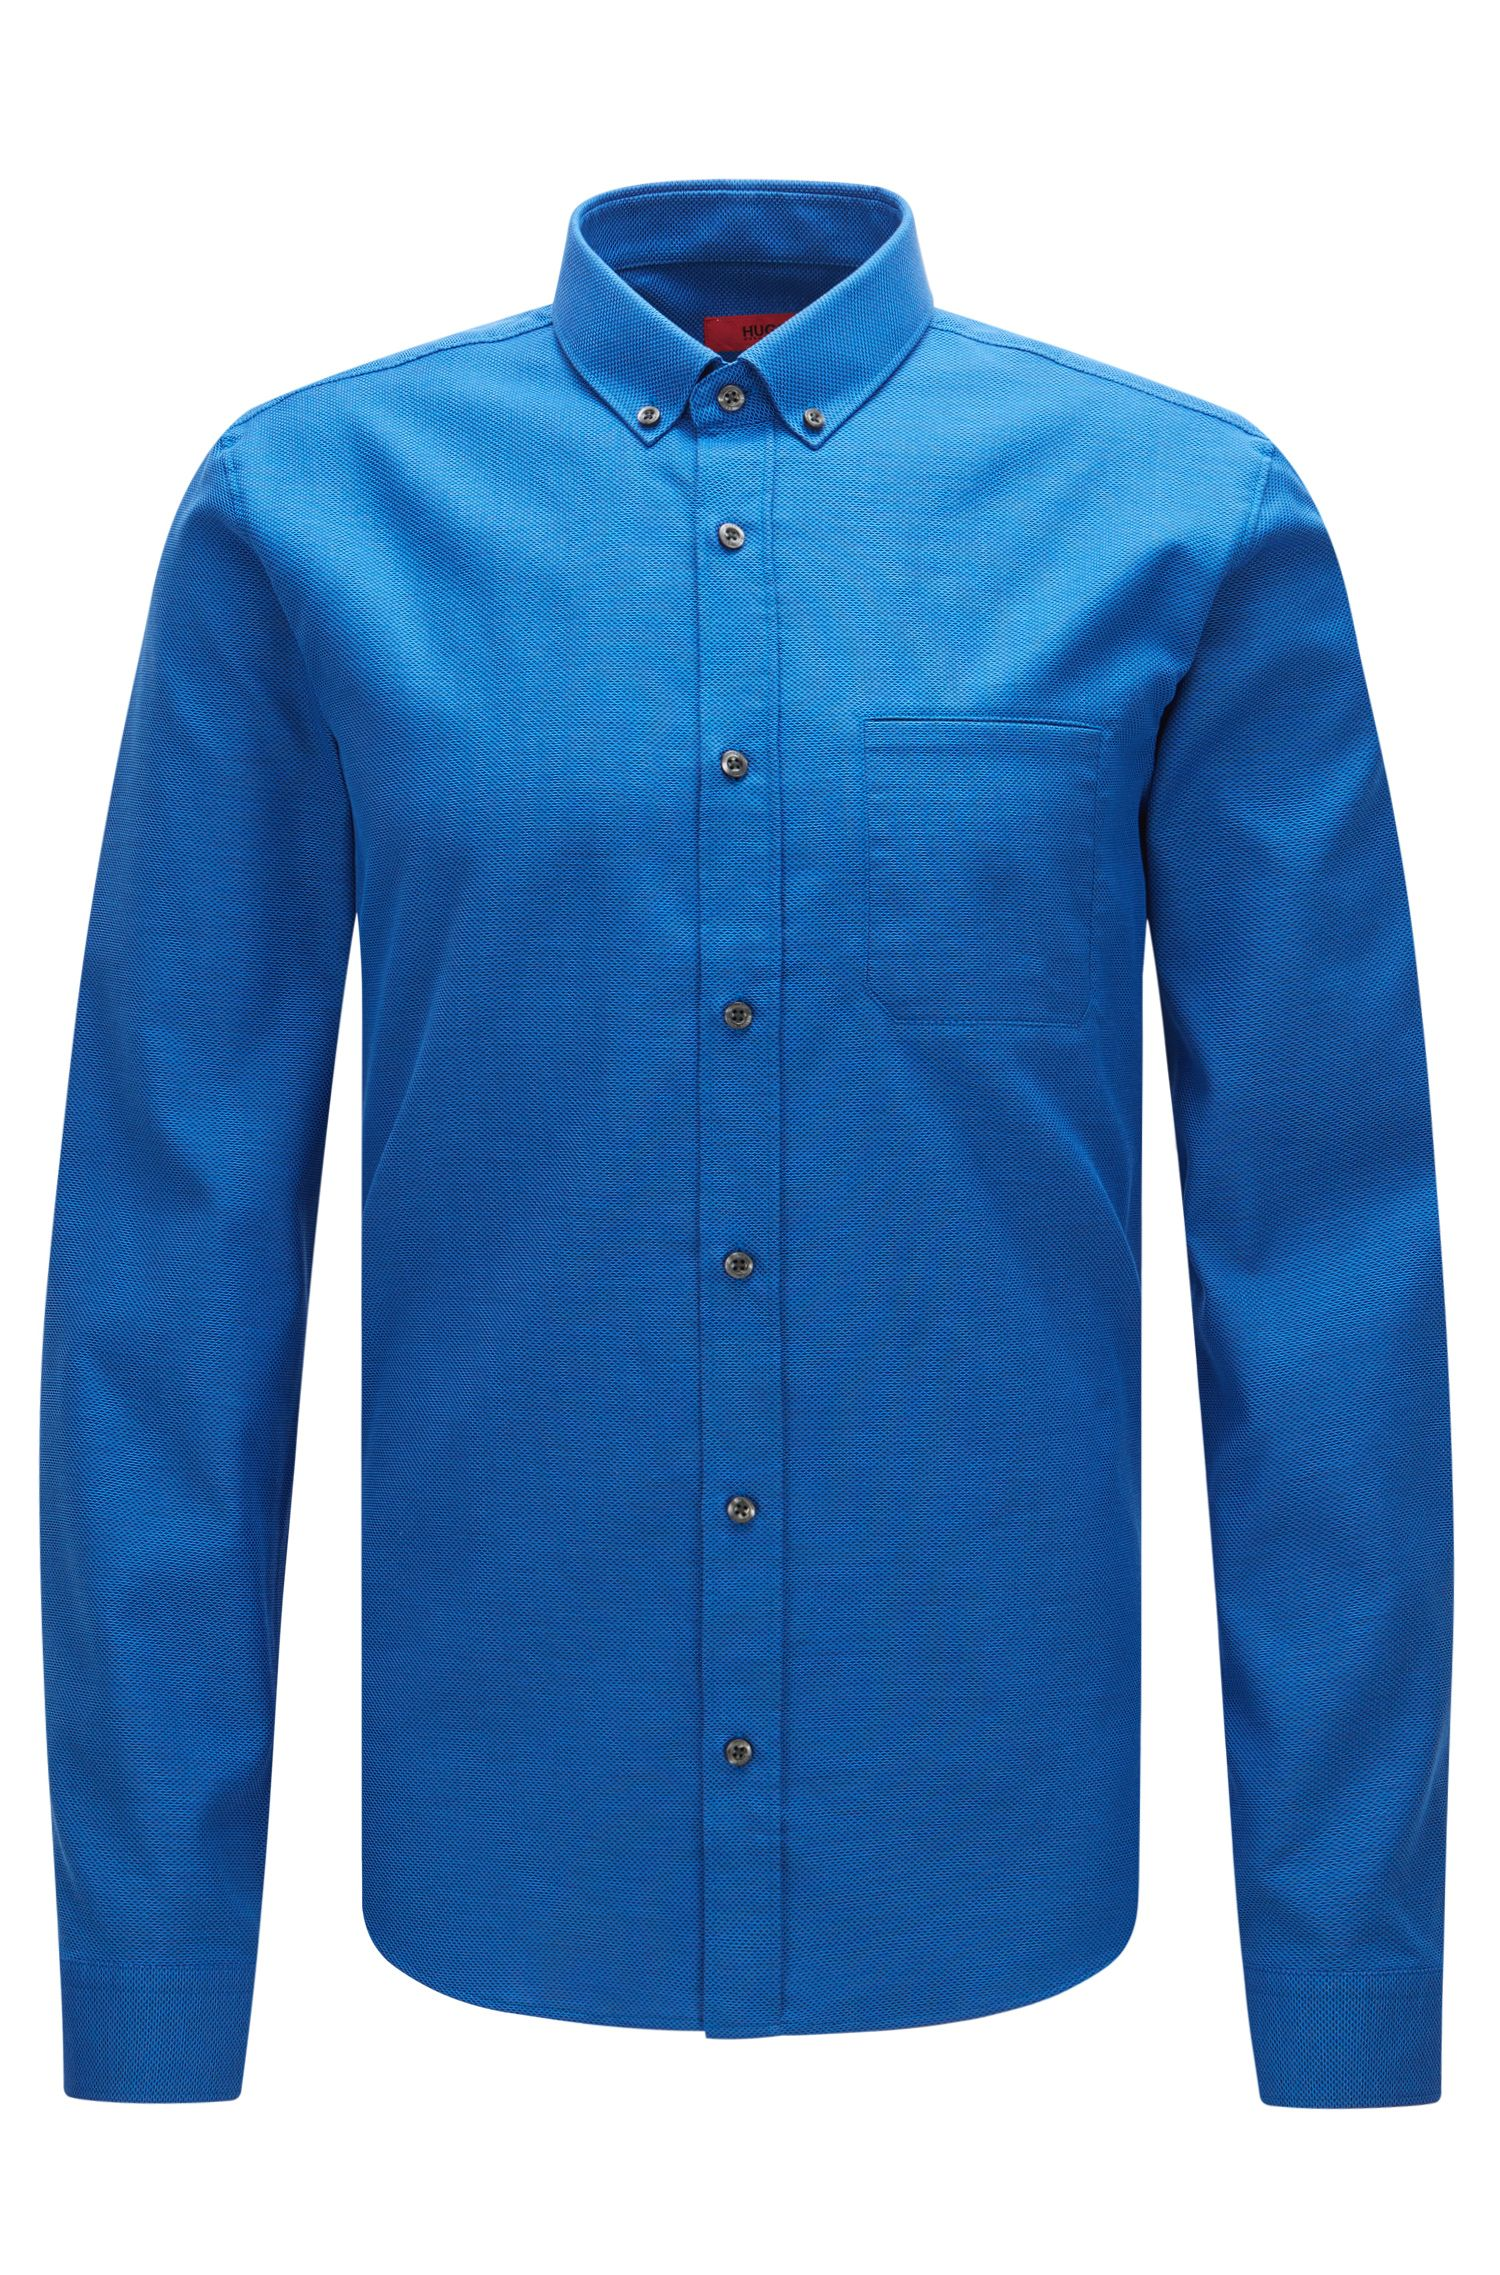 Cotton Button Down Shirt, Slim Fit | Enico